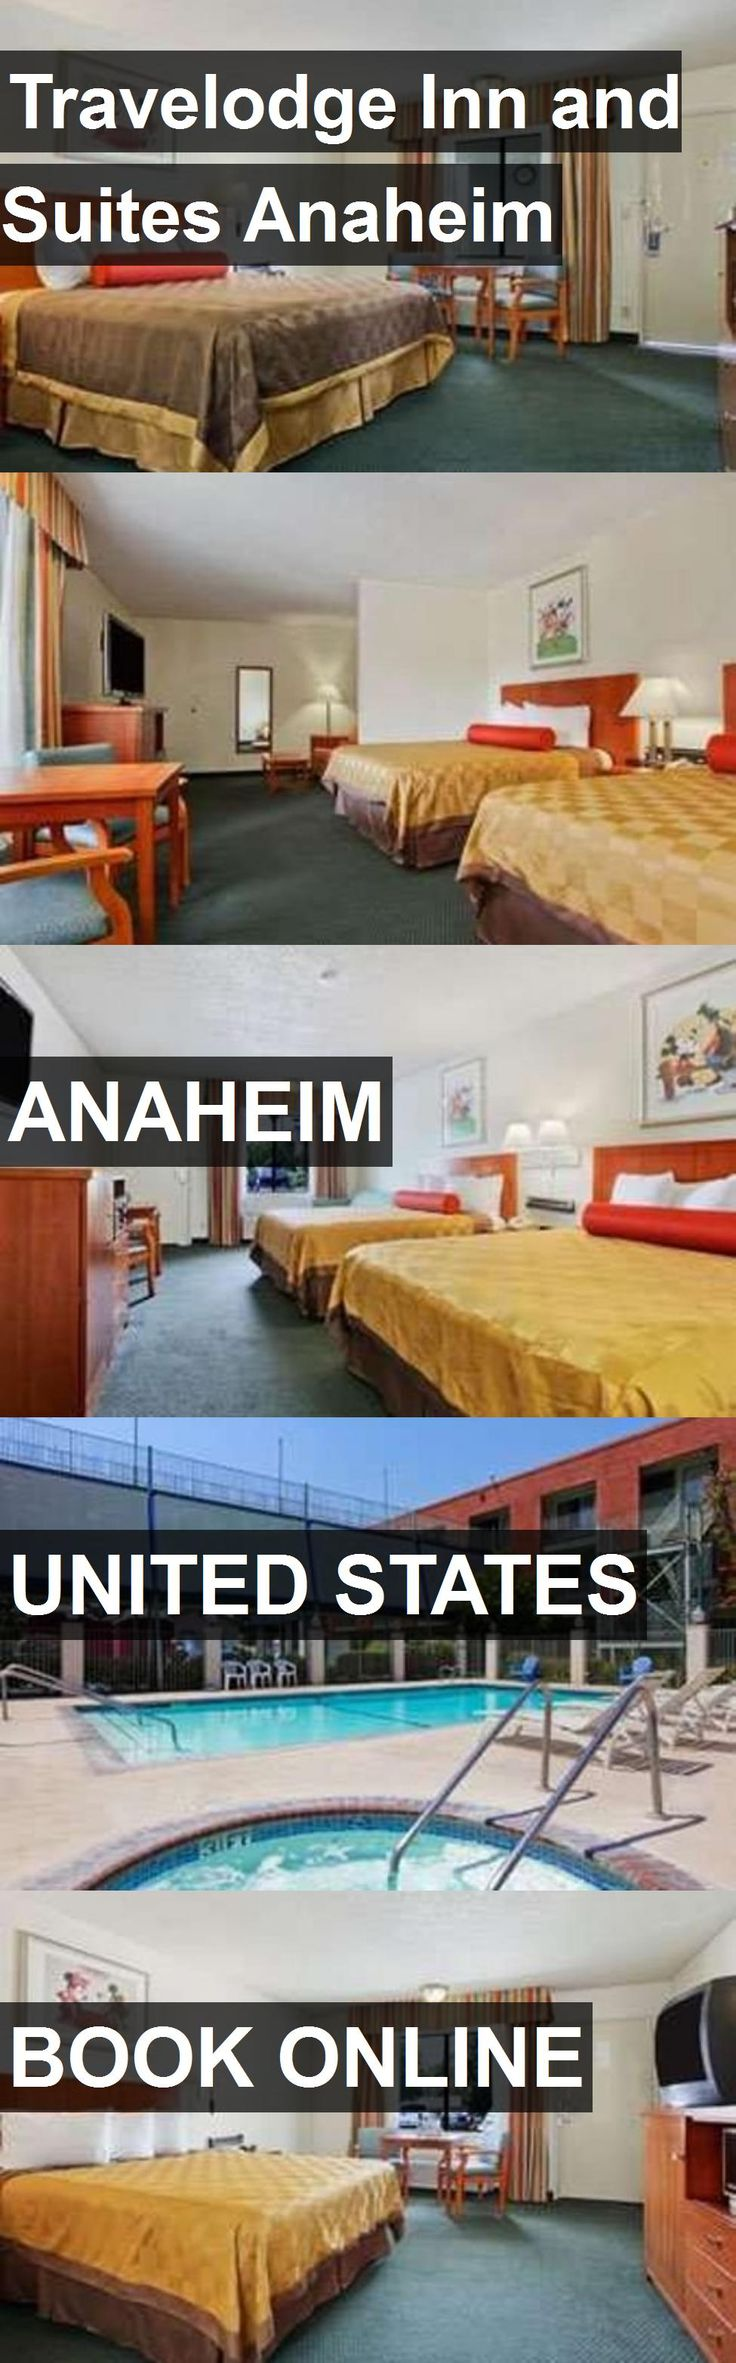 Hotel Travelodge Inn and Suites Anaheim in Anaheim, United States. For more information, photos, reviews and best prices please follow the link. #UnitedStates #Anaheim #hotel #travel #vacation